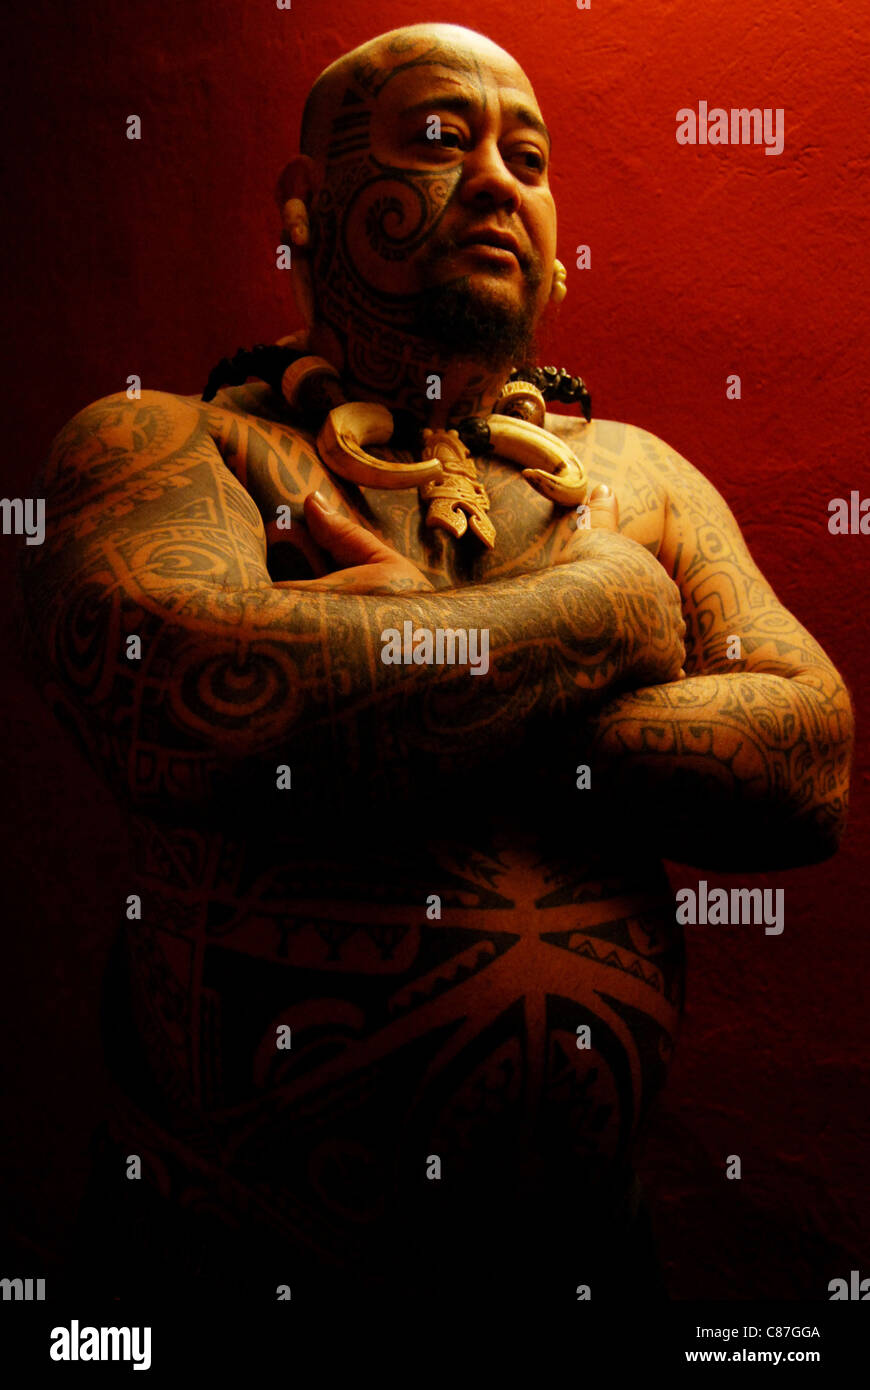 A Maori tattoo artist at the Tattoo Convention, Dresden, Germany Stock Photo